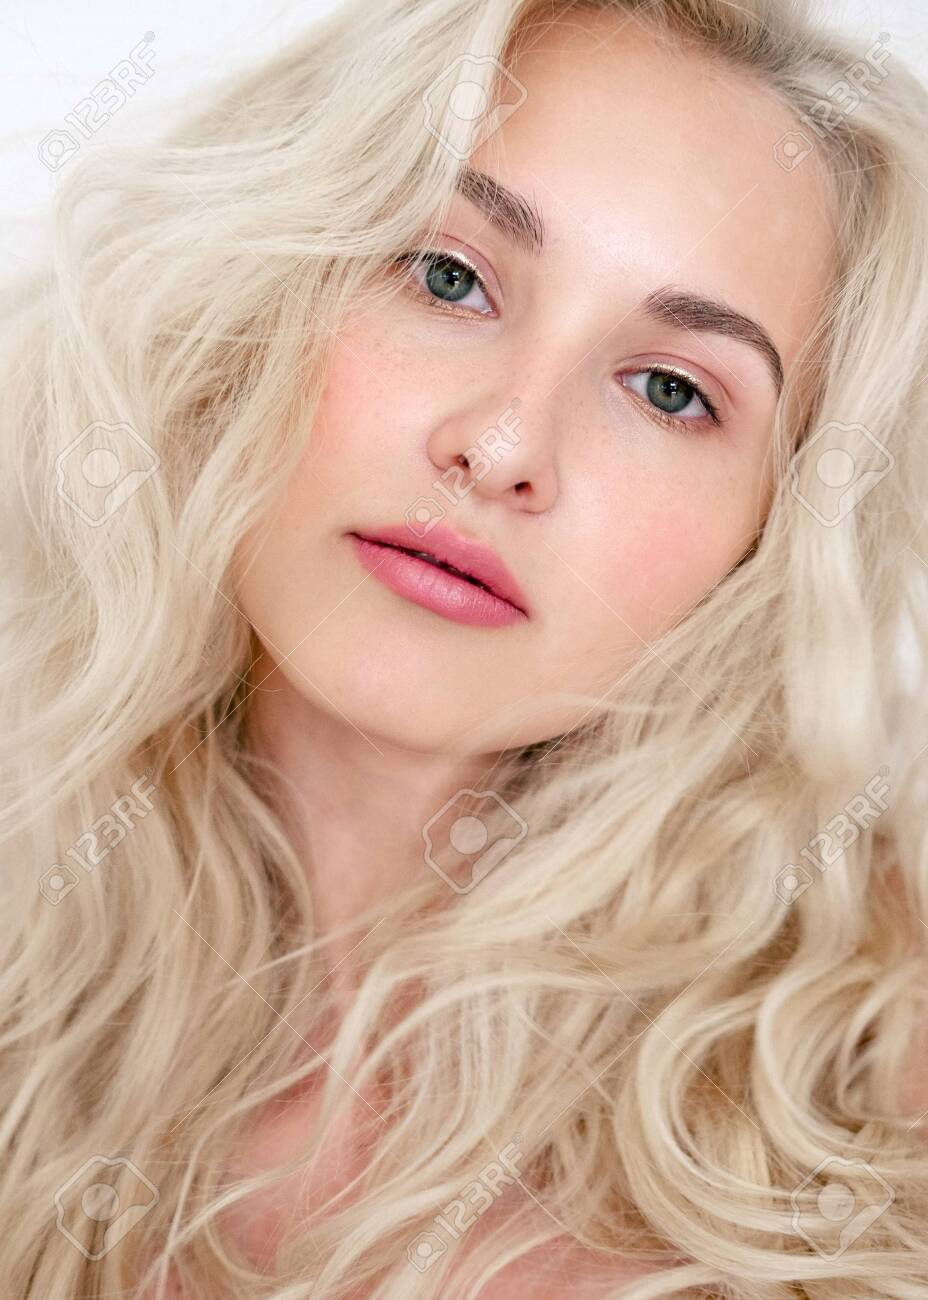 Portrait of a beautiful blonde model with lokans with natural makeup. Fashionable shiny marker on the skin, lip gloss, makeu - 141445276